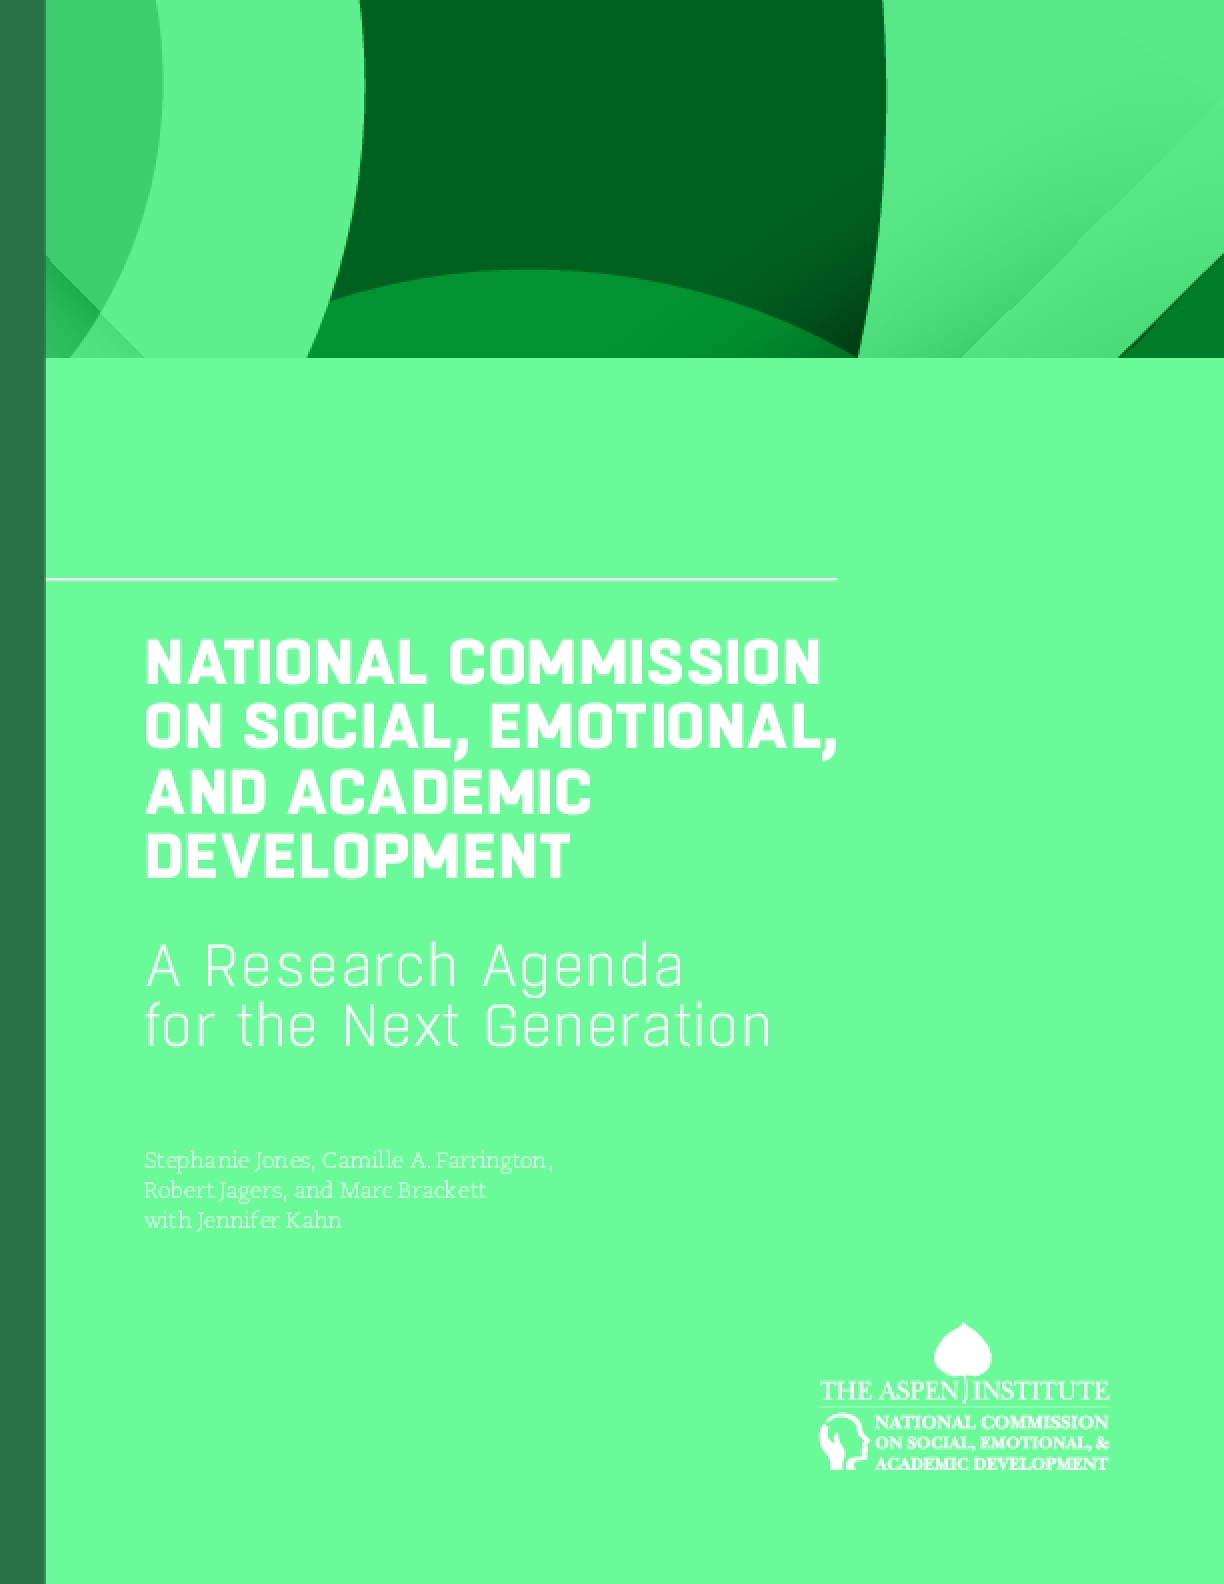 National Commission on Social, Emotional, and Academic Development: A Research Agenda for the Next Generation